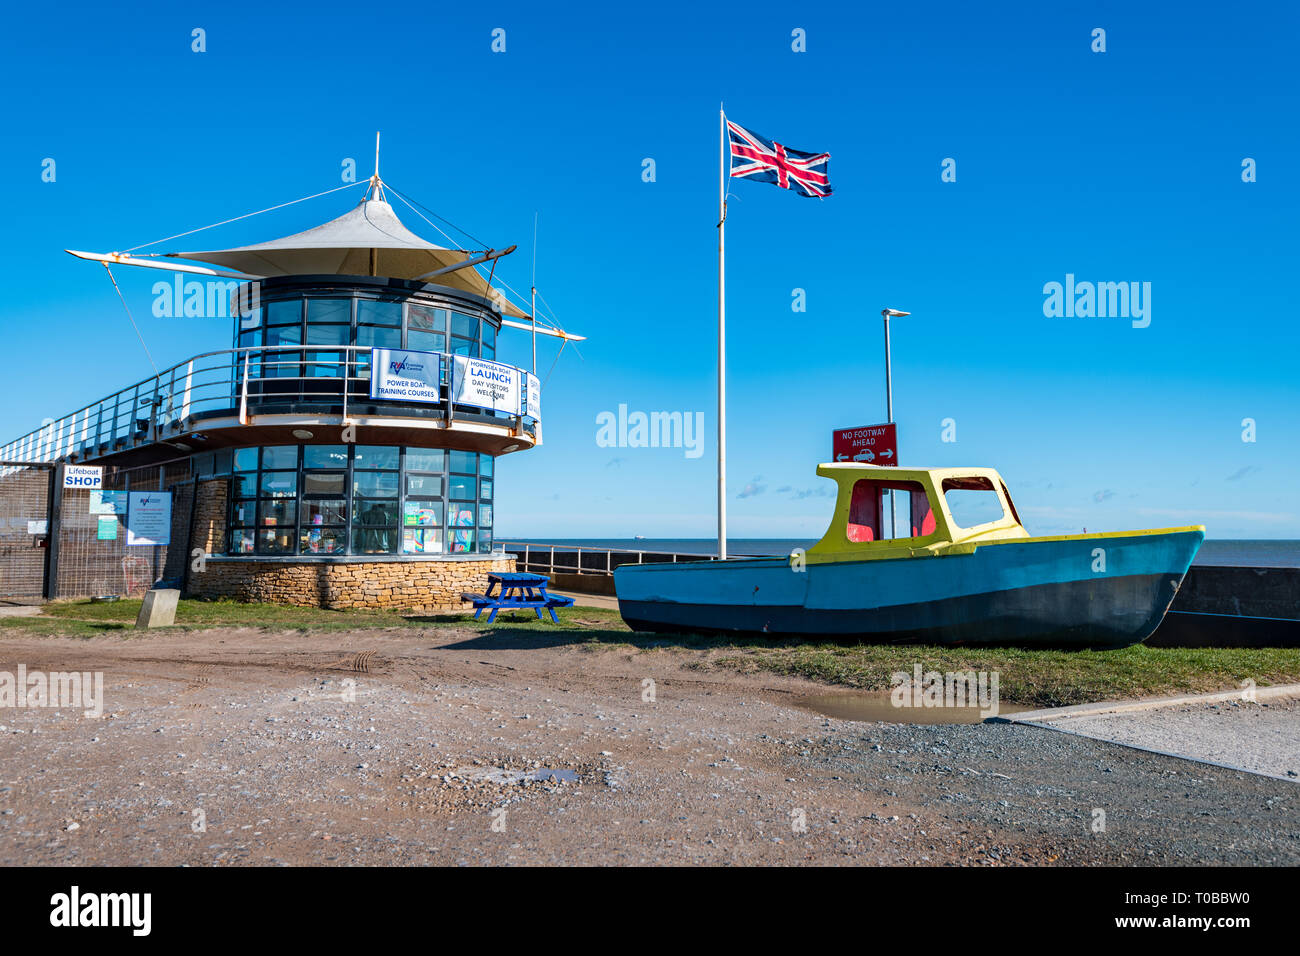 HORNSEA, UK - 17TH MARCH 2018: Hornsea Inshore Lifeboat Rescue building along the seafront - East Yorkshire, Uk - Stock Image